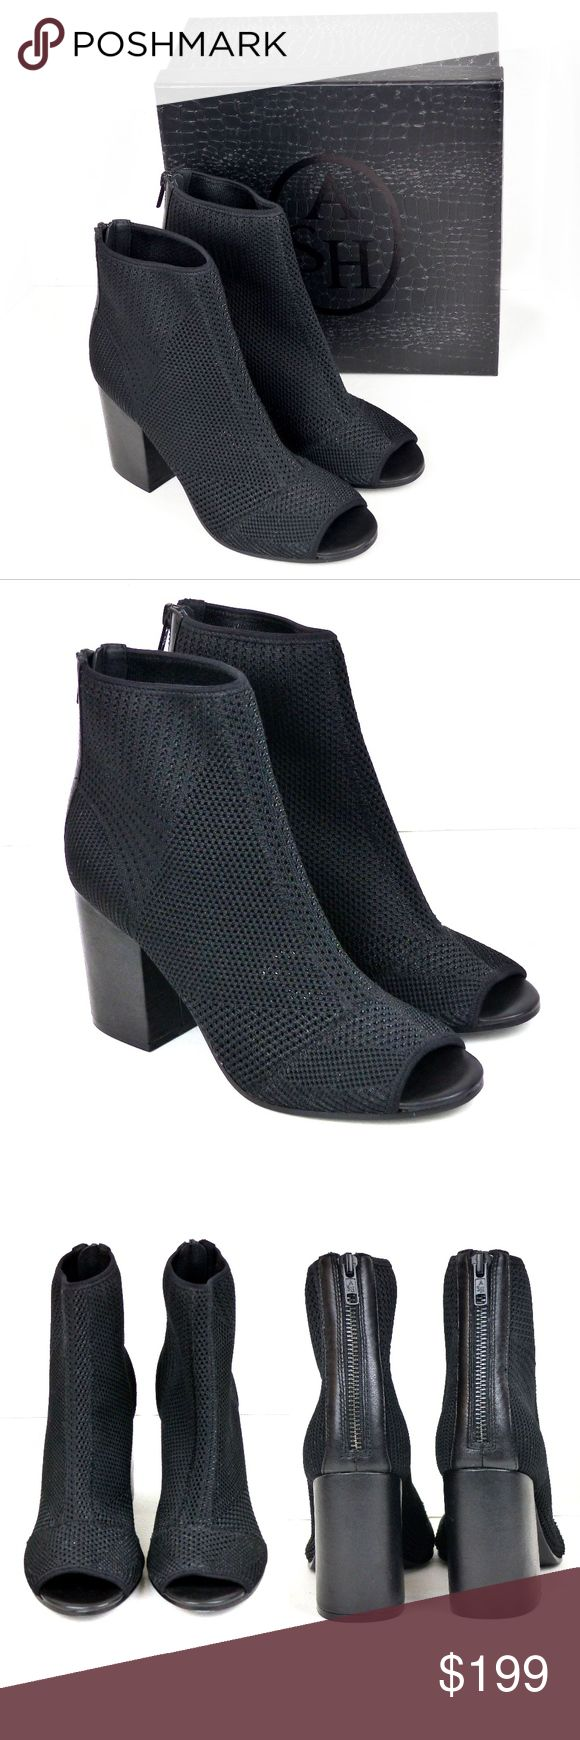 "ASH Future Peep Toe Ankle Bootie Black 8US 39EU Worn indoors for a few hours only, Ash Black Future Peep Toe Ankle Booties. Comes with box and dust bag. Retailed $225.00   Size/ Measurements: EU 39 US 8 M UK 6  10 1/4"" Insole Length  3 ½  Heel height 4 7/8"" Shaft ""Tall"" 9 1/2 "" Circumference (around the ankle)   Detail: Peep toe Contrasting construction Back zip closure Covered block heel Inside padded insole Some minimal sole wear Ash Shoes Ankle Boots & Booties"